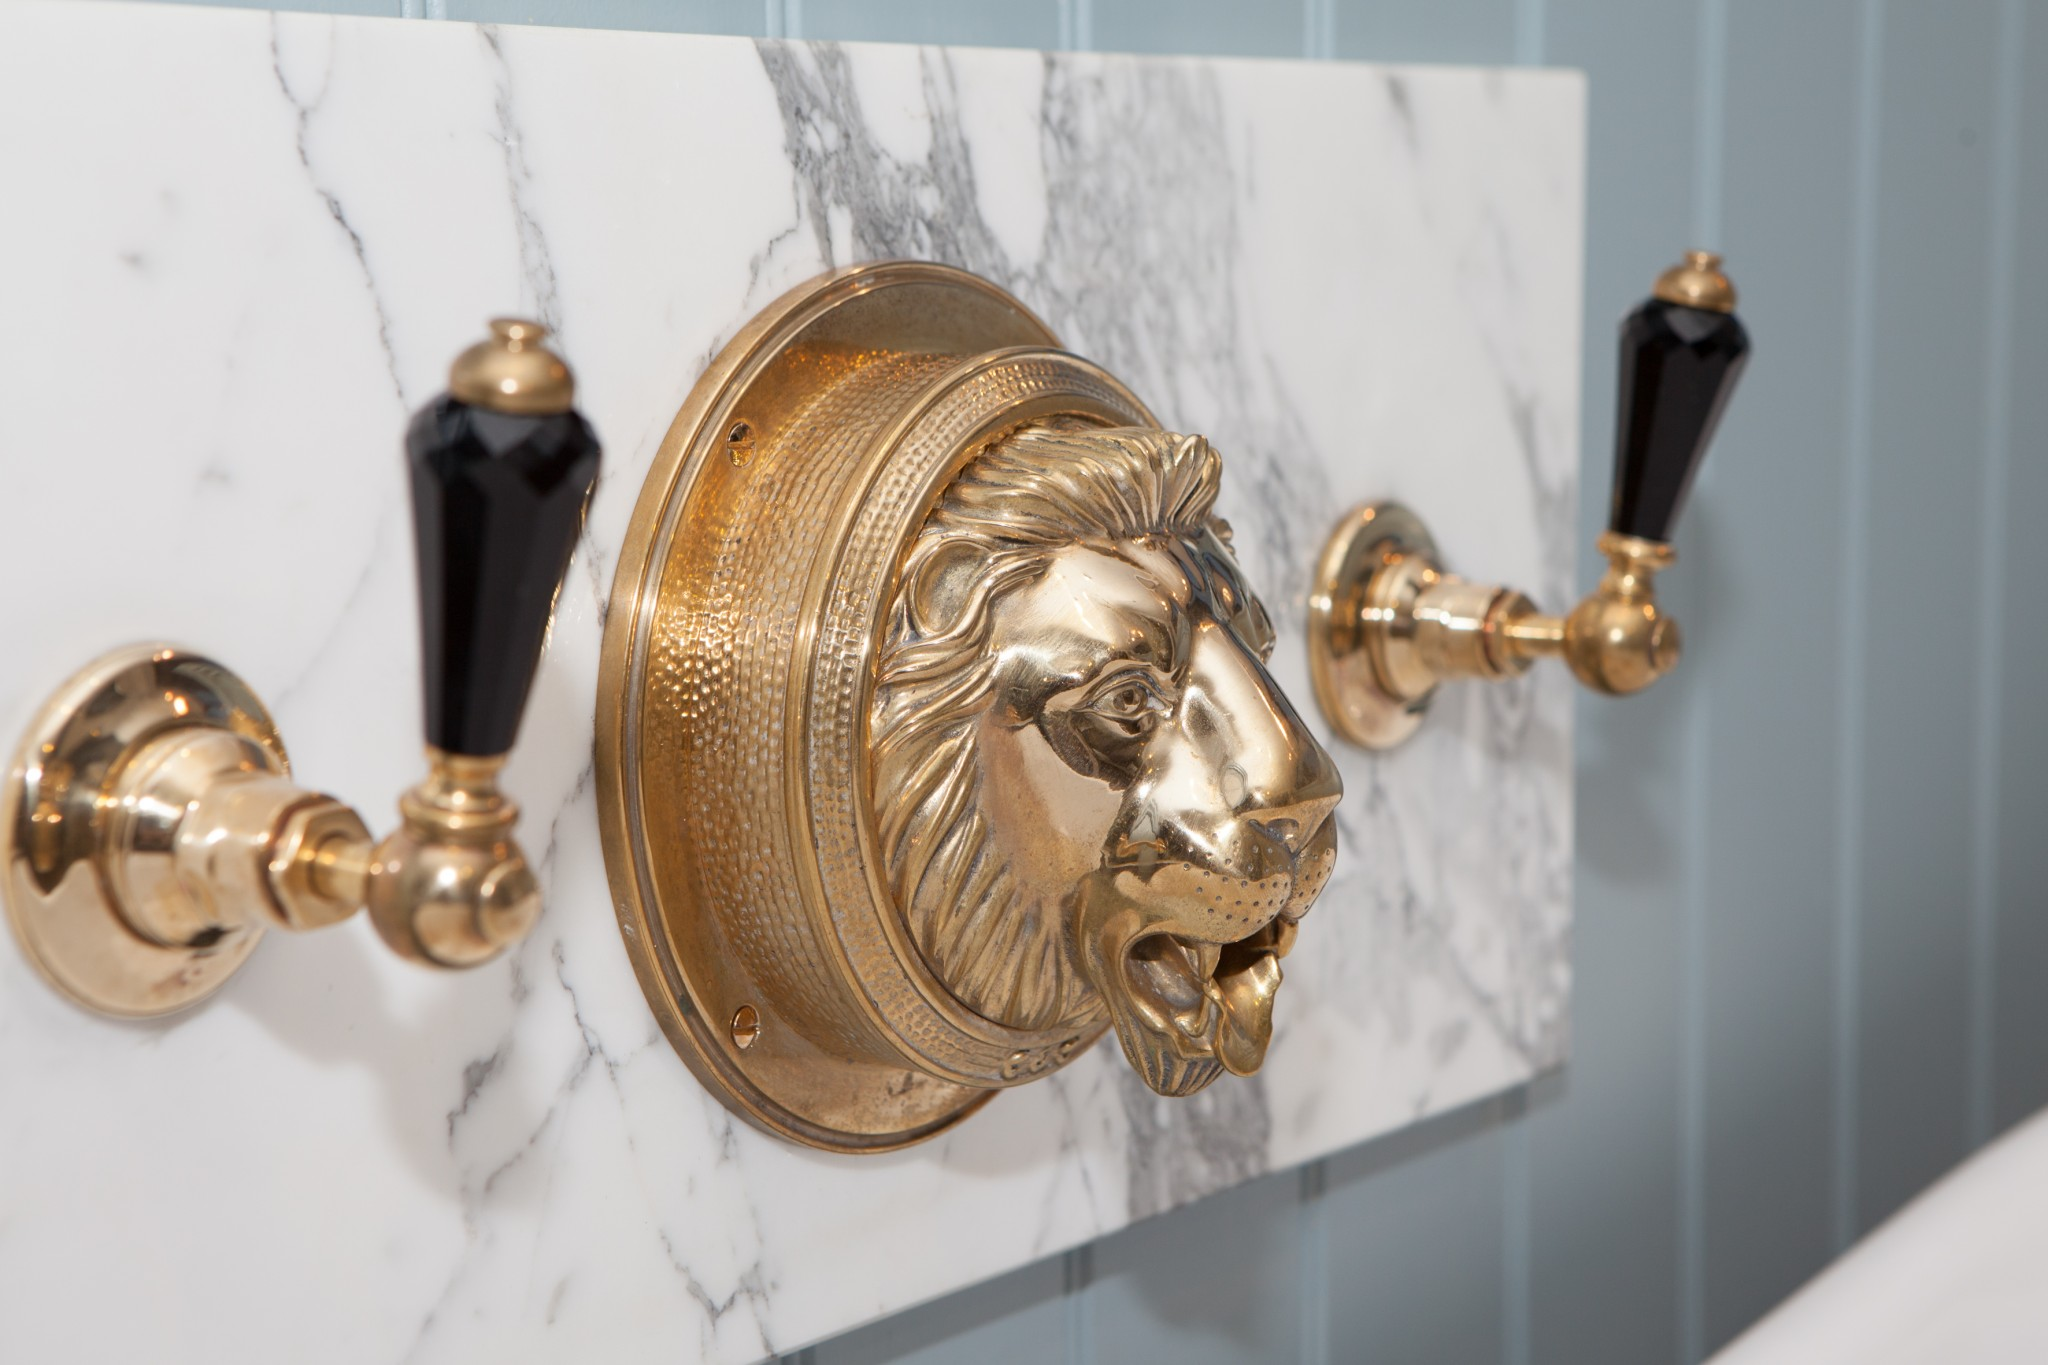 Chadder Royal Lions Head Bath filler, polished brass finish with Black Crystal tap leavers.